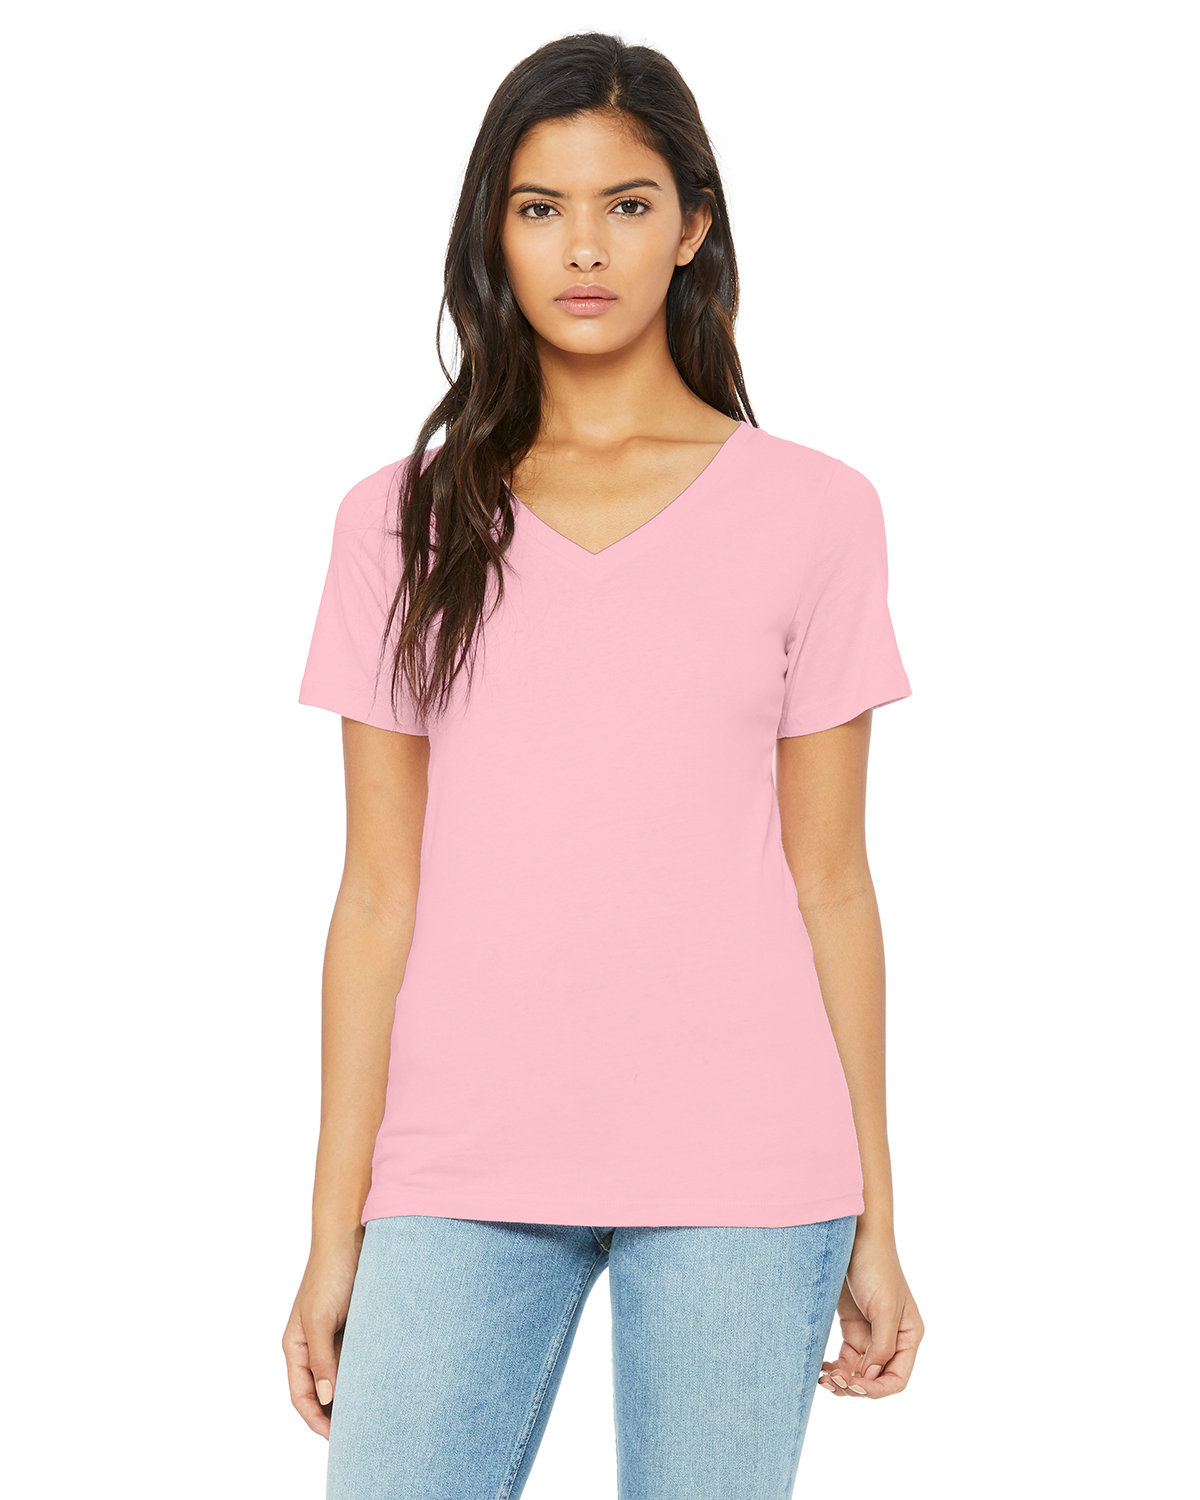 Bella + Canvas Ladies' Relaxed Jersey V-Neck T-Shirt PINK